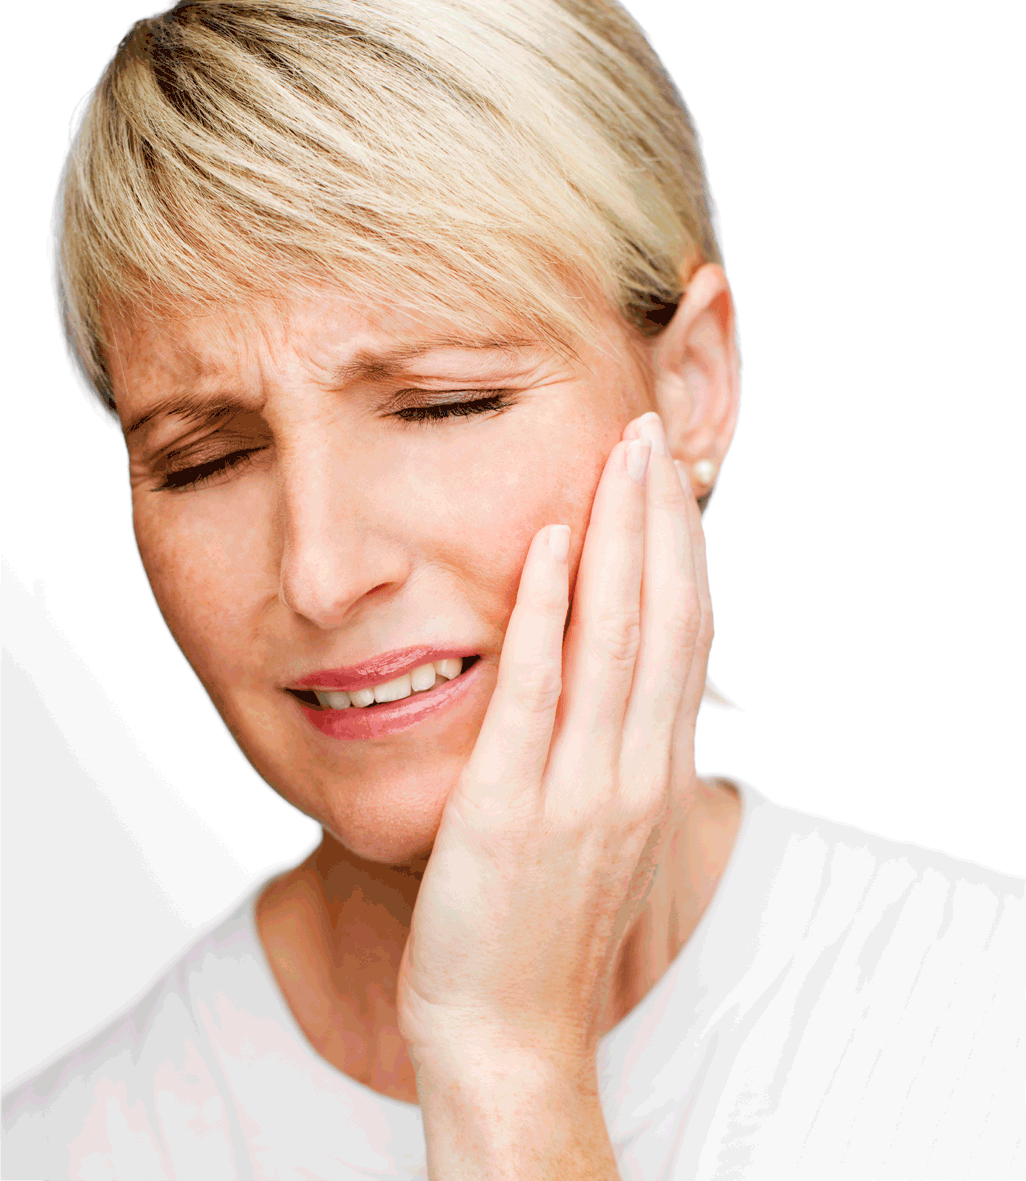 Jaw Problems and Head Pain